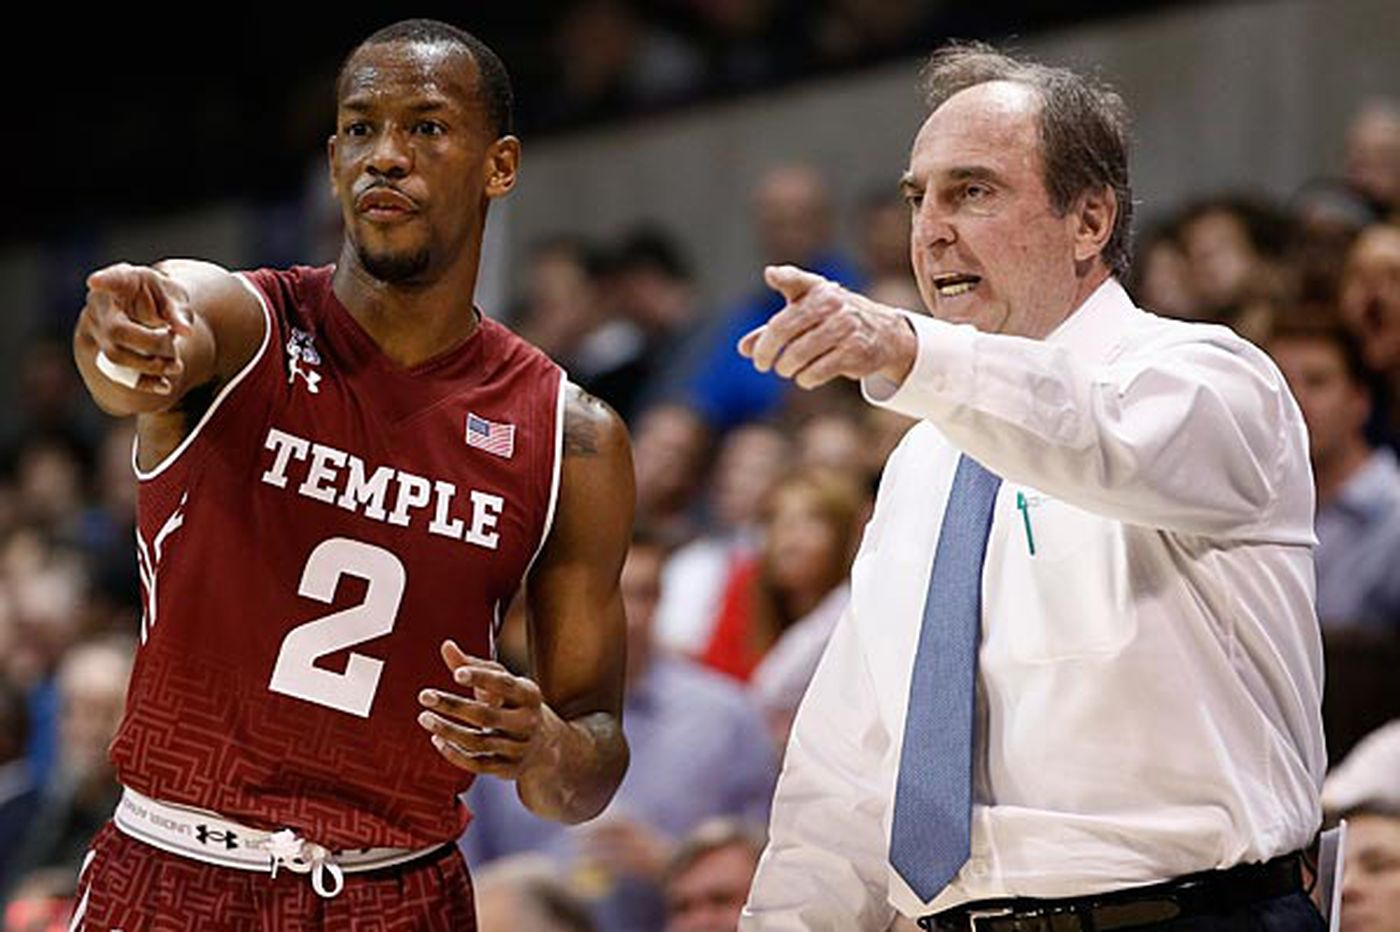 You knew Temple hoops was back from Game 1